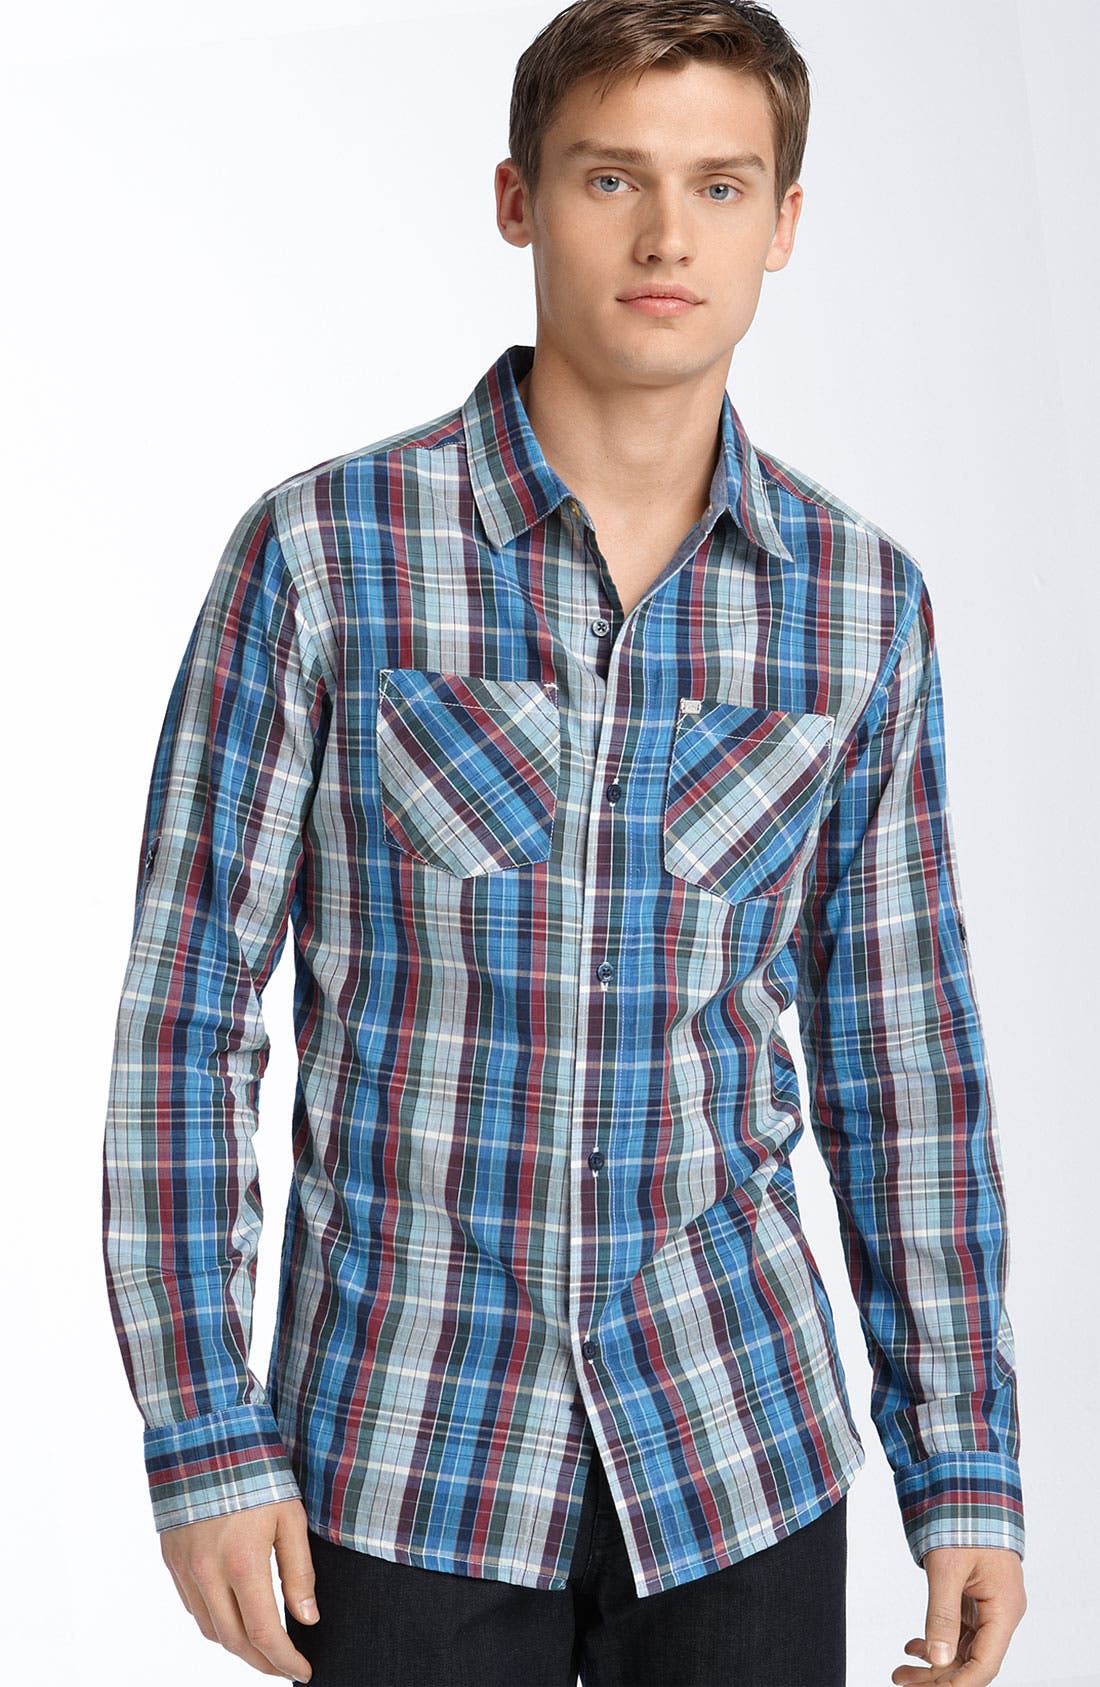 Alternate Image 1 Selected - Quiksilver 'Oleary' Plaid Shirt